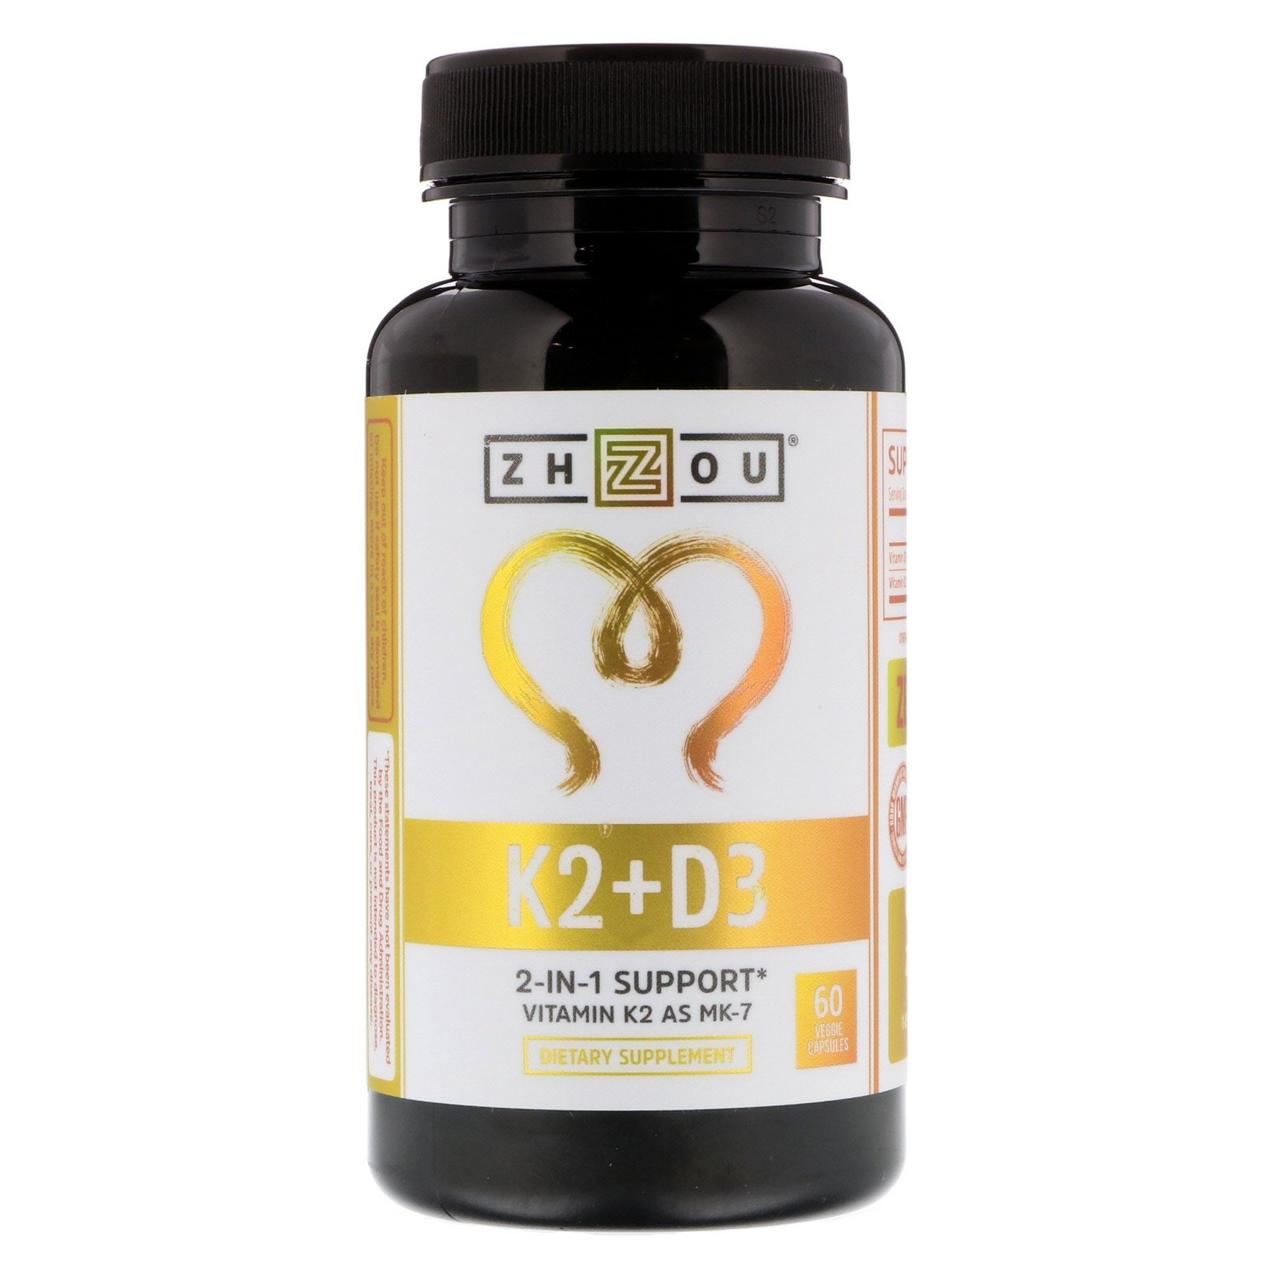 Zhou Nutrition, K2 + D3, 2-In-1 Support, 60 Veggie Capsules